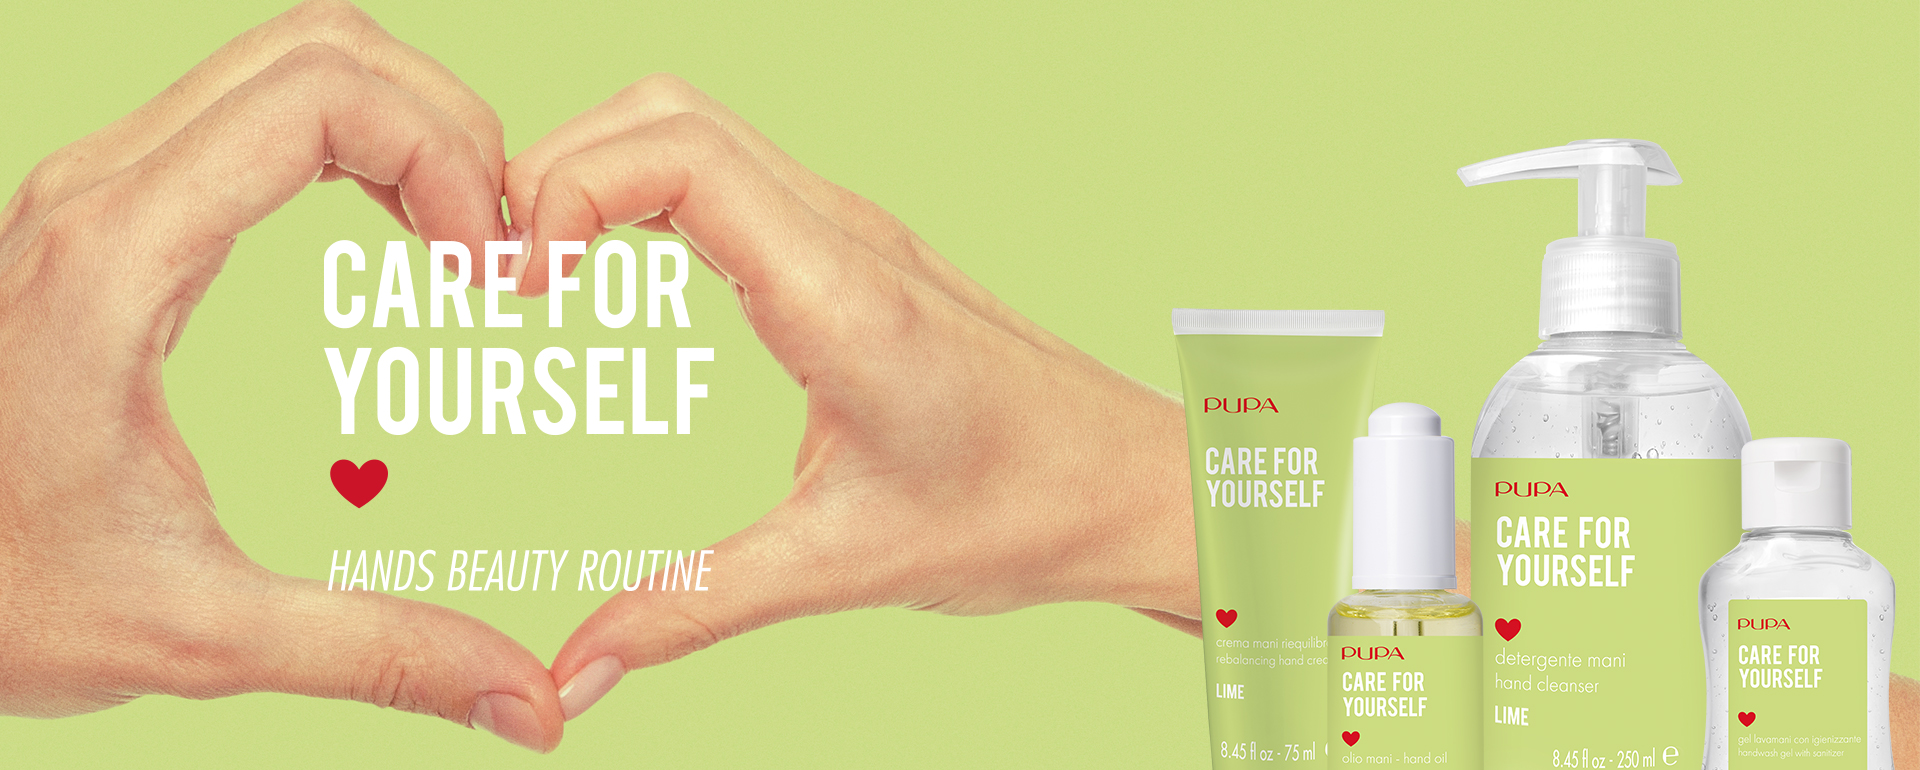 Care for yourself- PUPA Milano